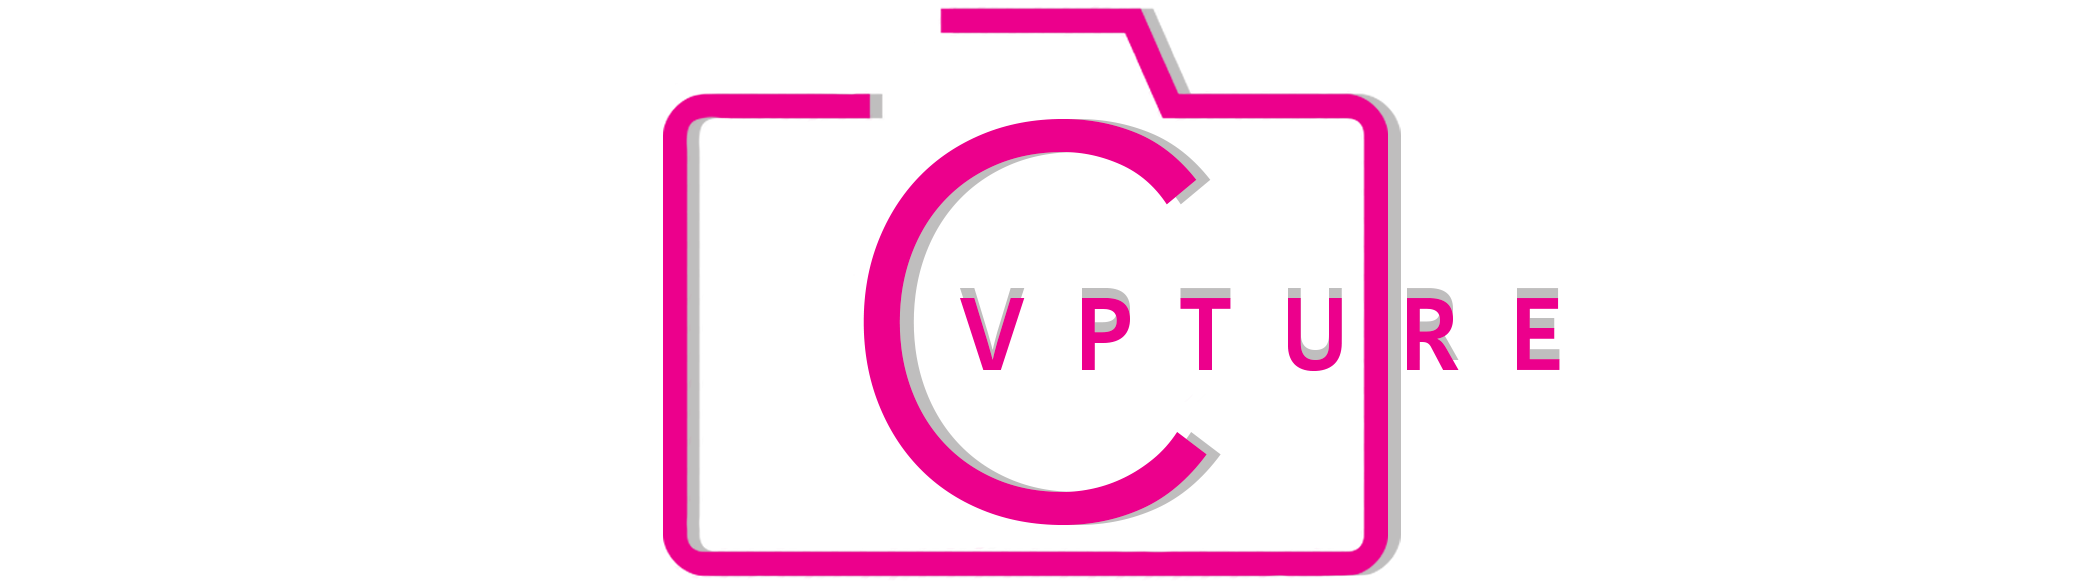 Cvpture | The Blog